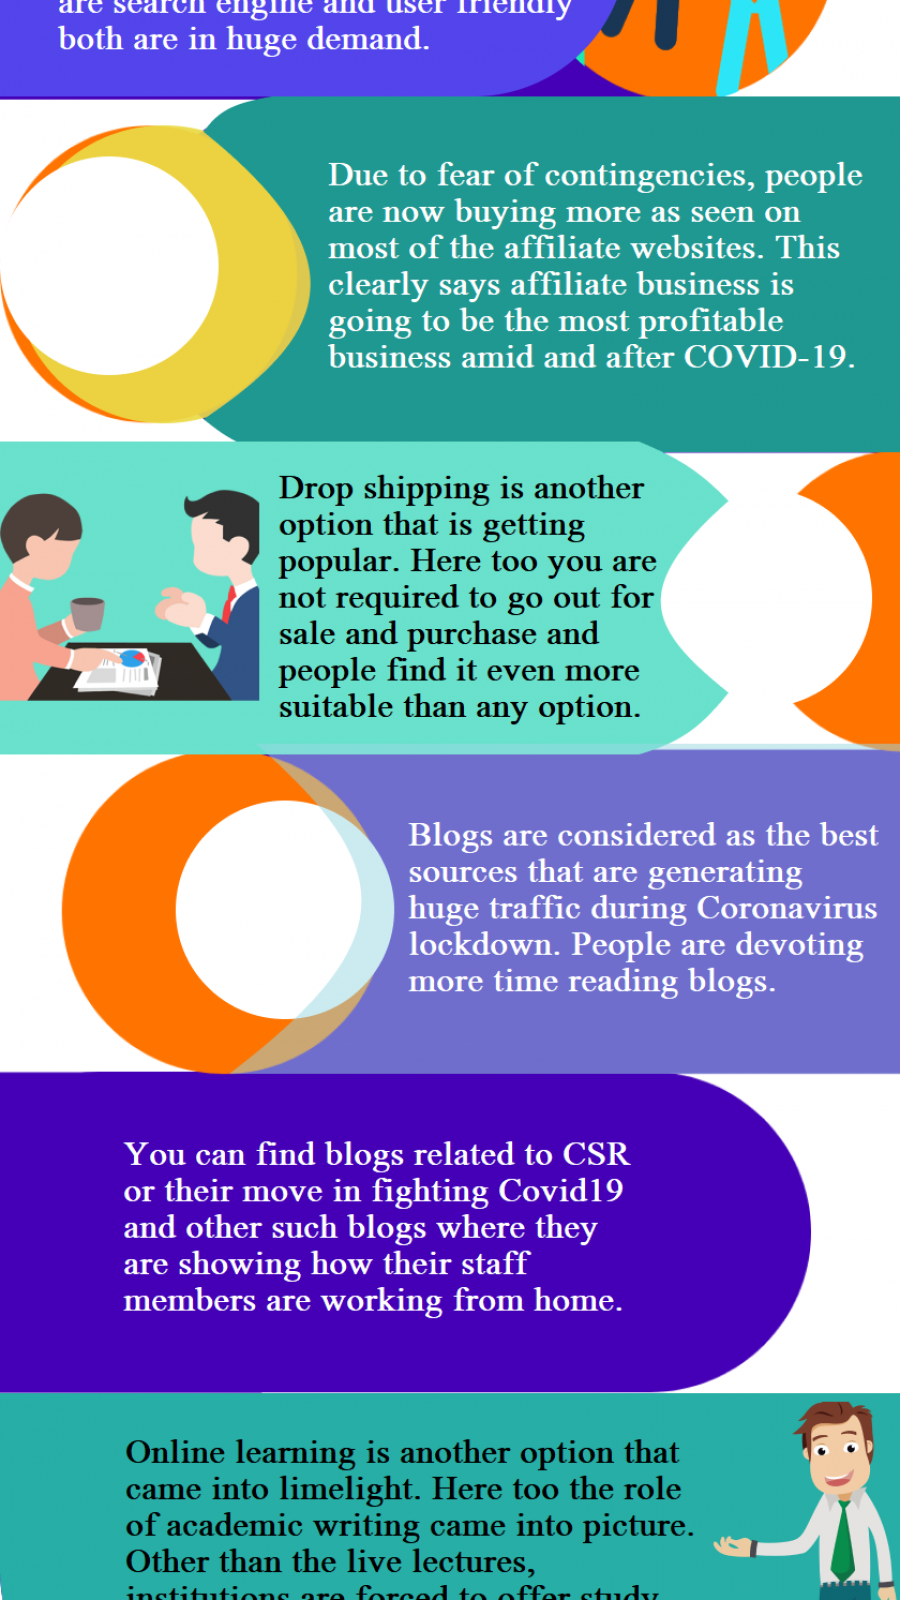 Infographic On Why Affiliate Marketing And Content Writing Services Are On Boom - ThoughtfulMinds